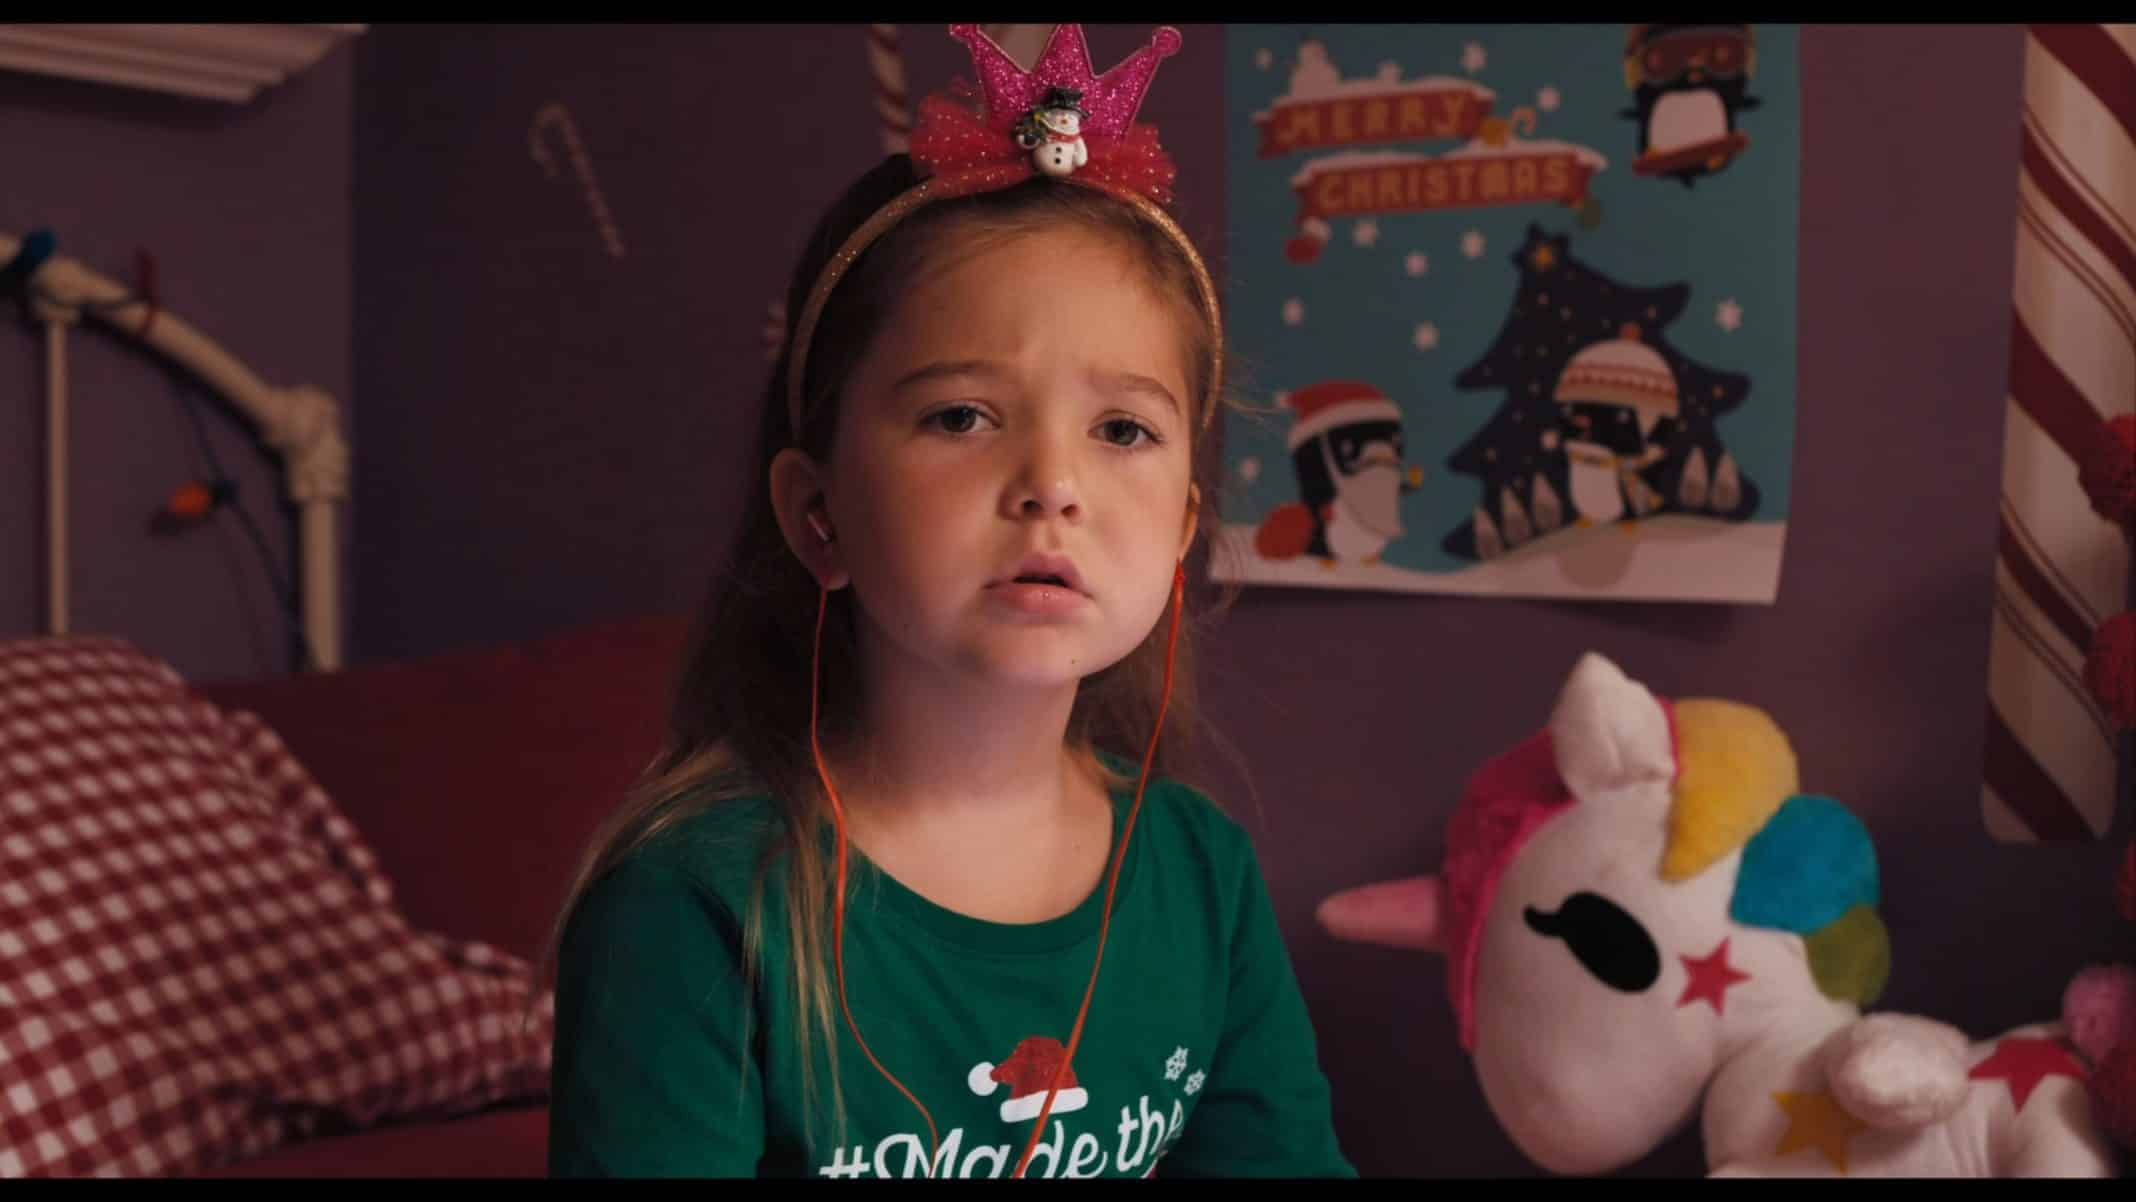 Jennifer (Poppy Gagnon) in a Christmas outfit.